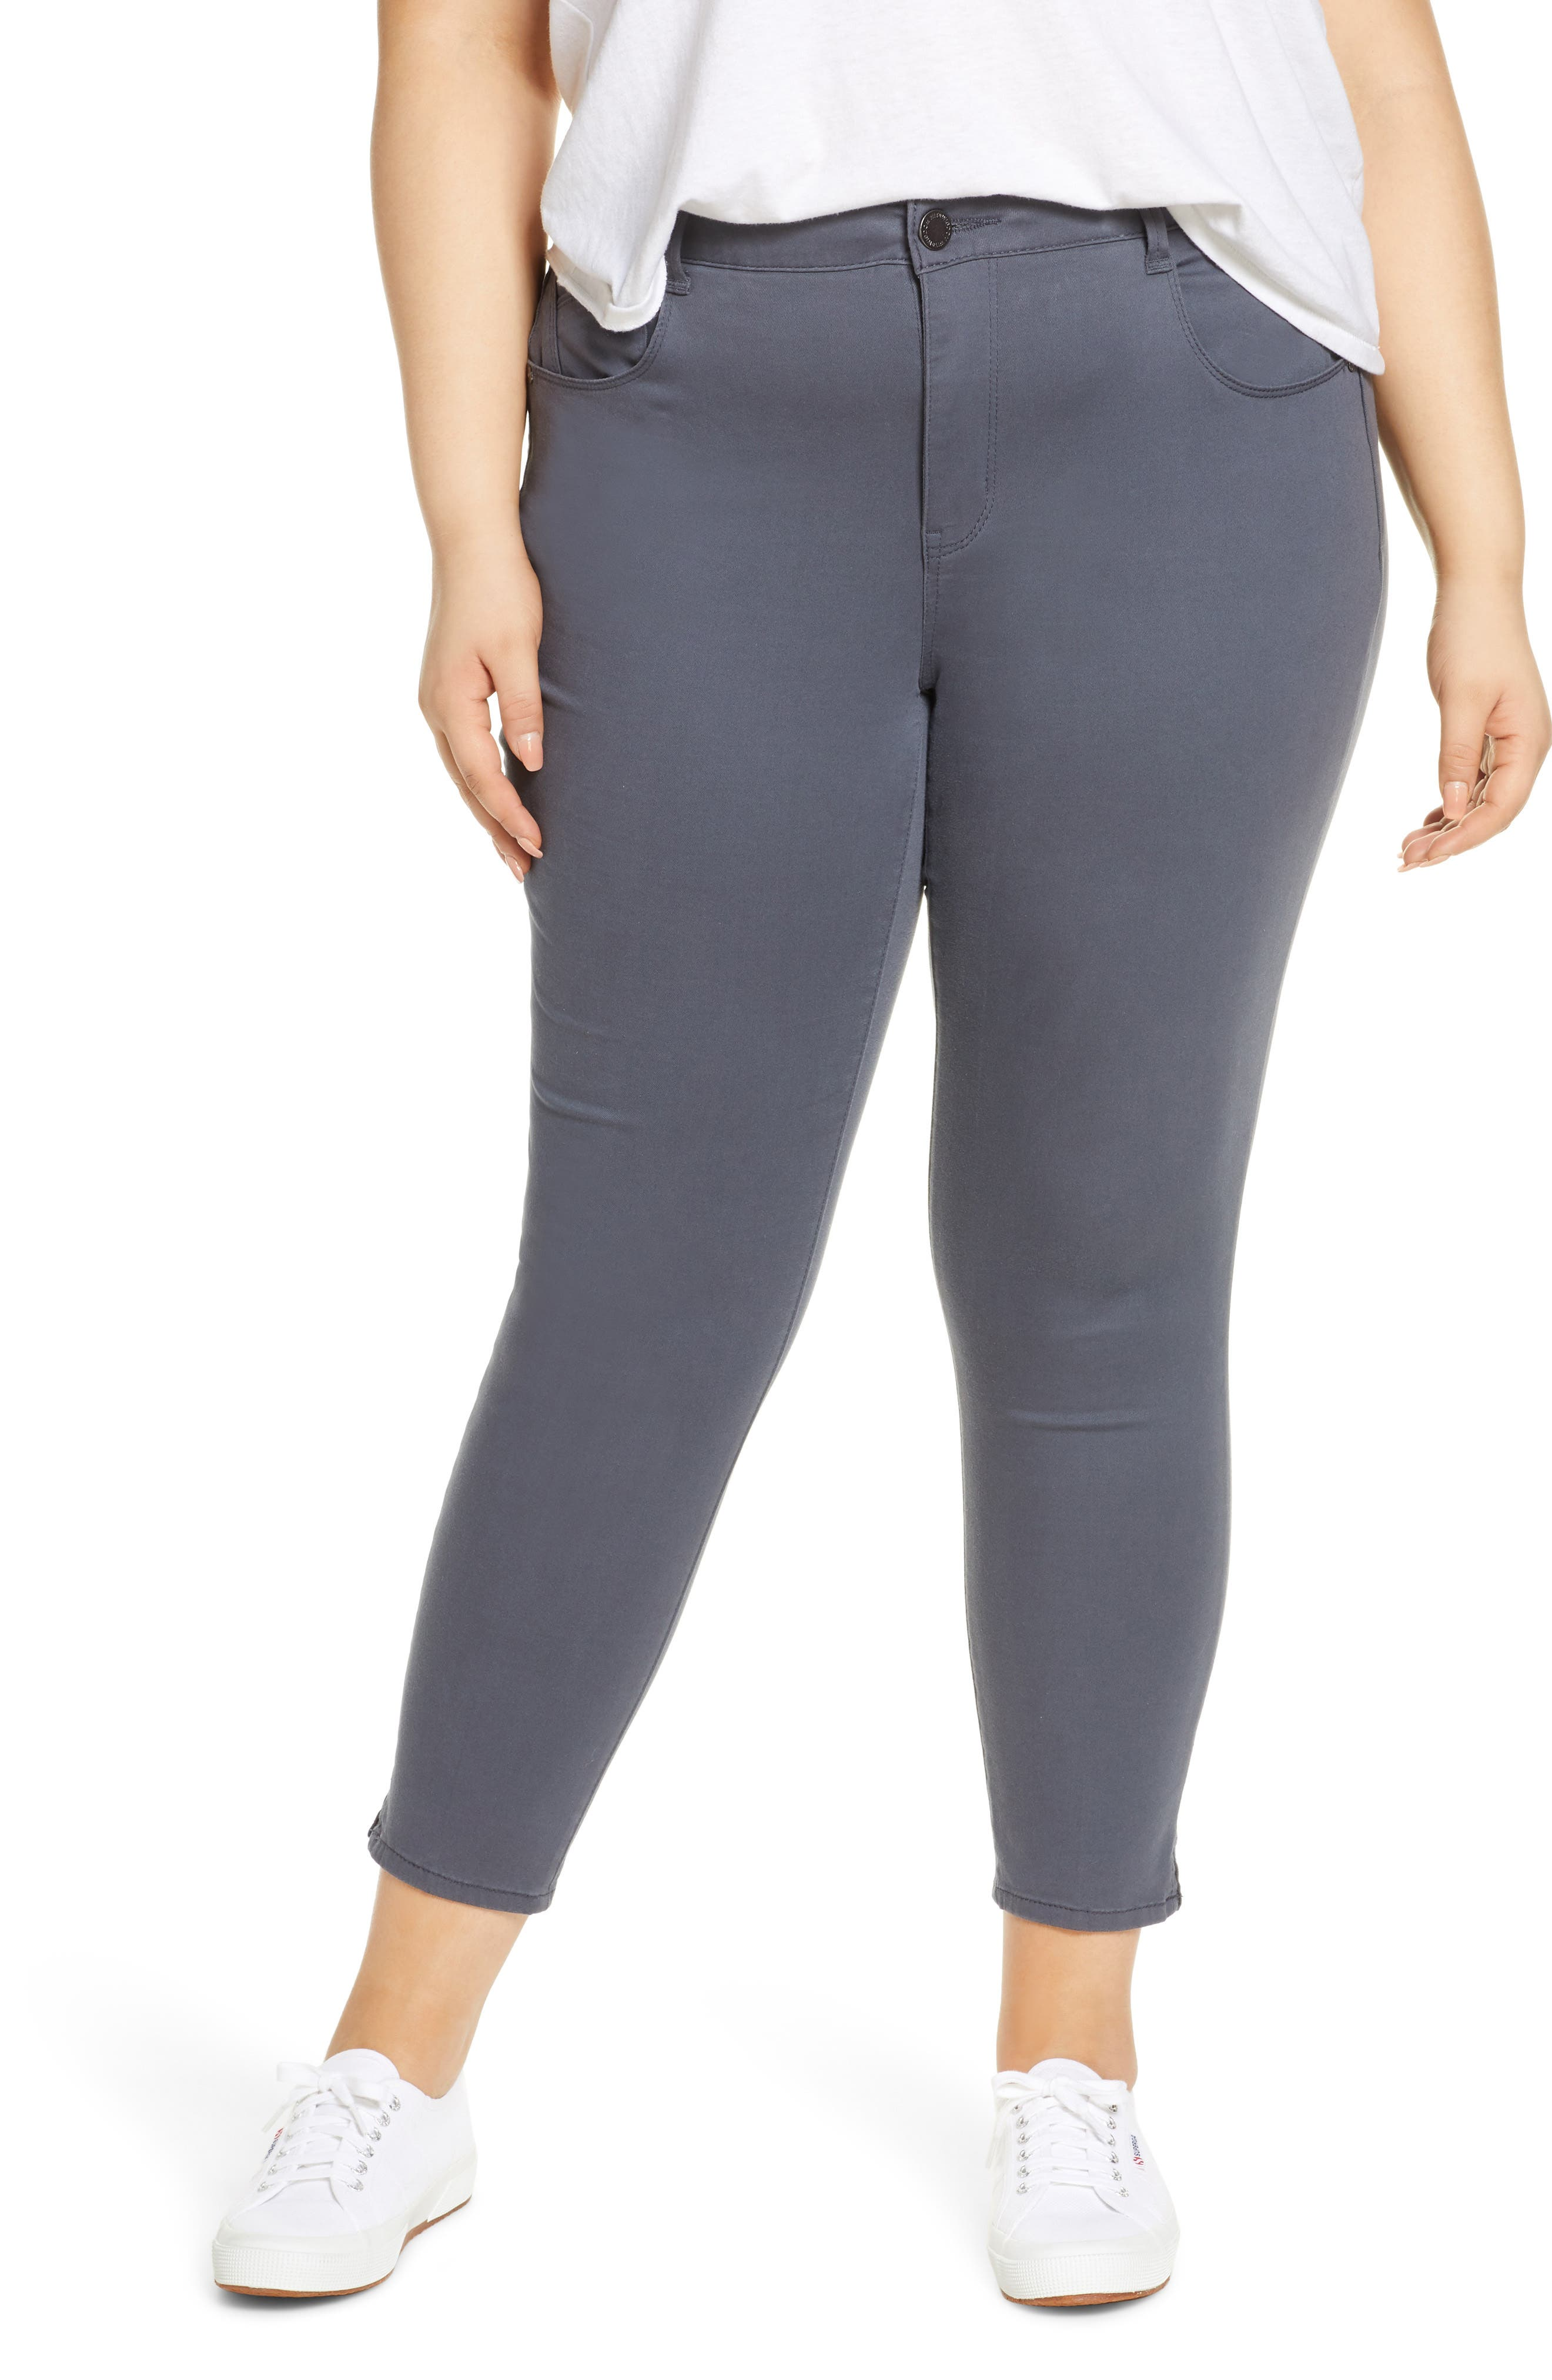 Stretchy, ankle-grazing skinny pants are designed for a slimming fit with Ab-solution technology to shape, smooth and lift in all the right places. Style Name: Wit & Wisdom Ab-Solution High Waist Ankle Skinny Pants (Plus Size) (Nordstrom Exclusive). Style Number: 5785708 1. Available in stores.